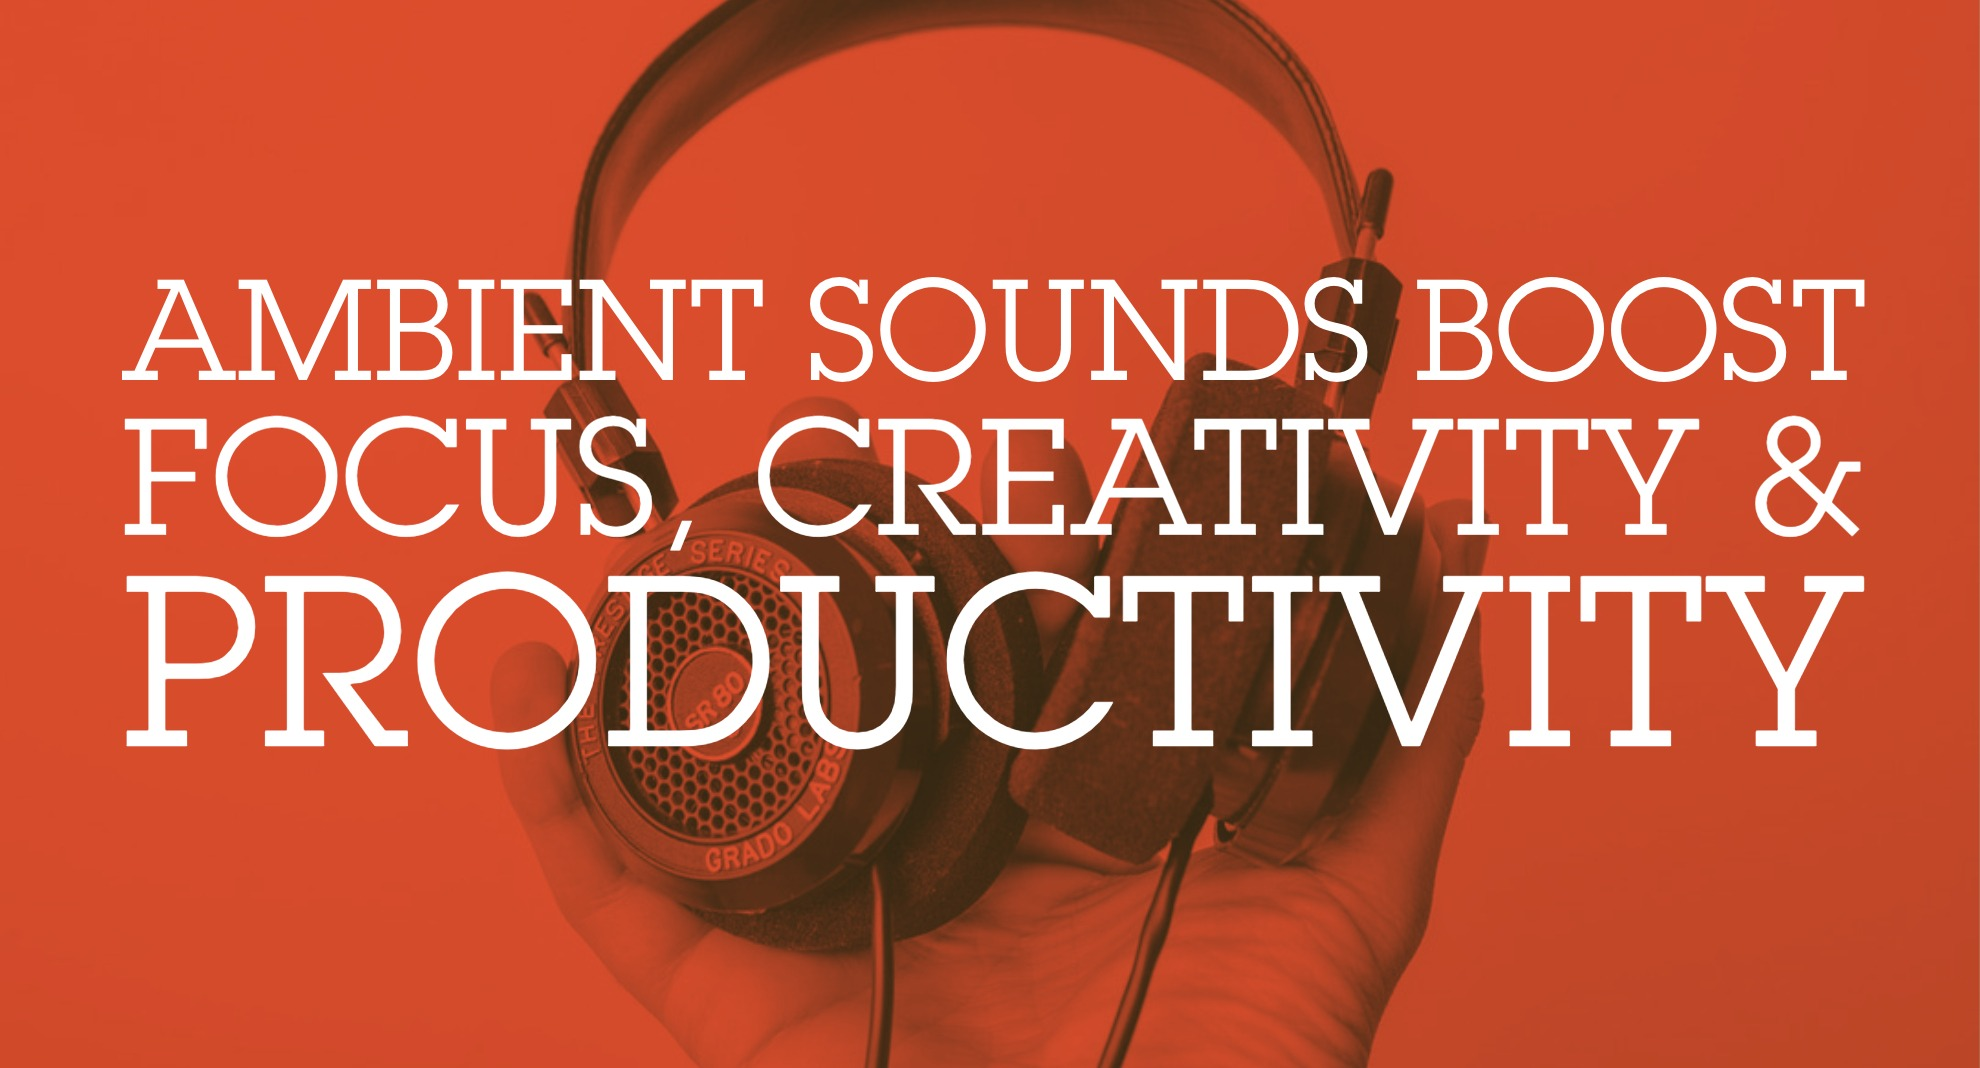 Ambient Sounds, Creativity and Productivity